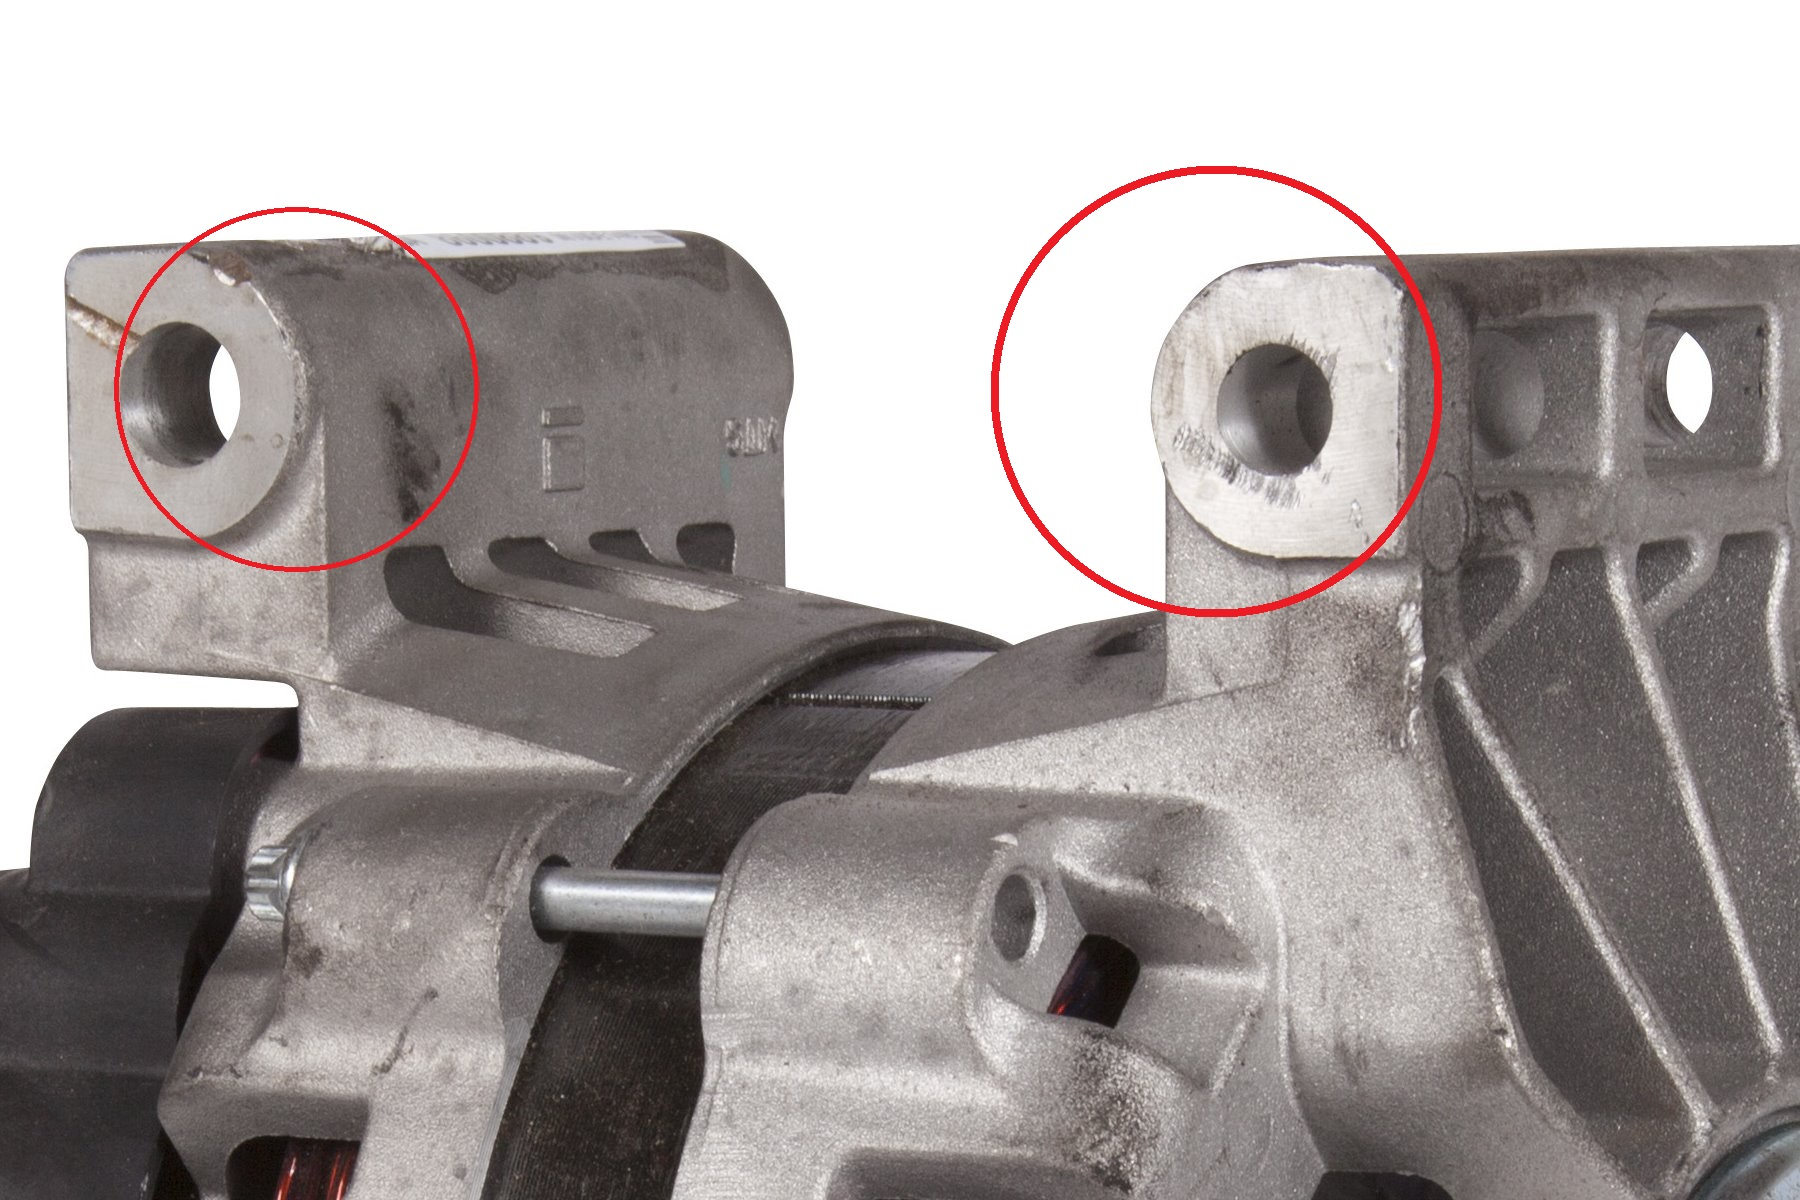 24SI pad mounts are round